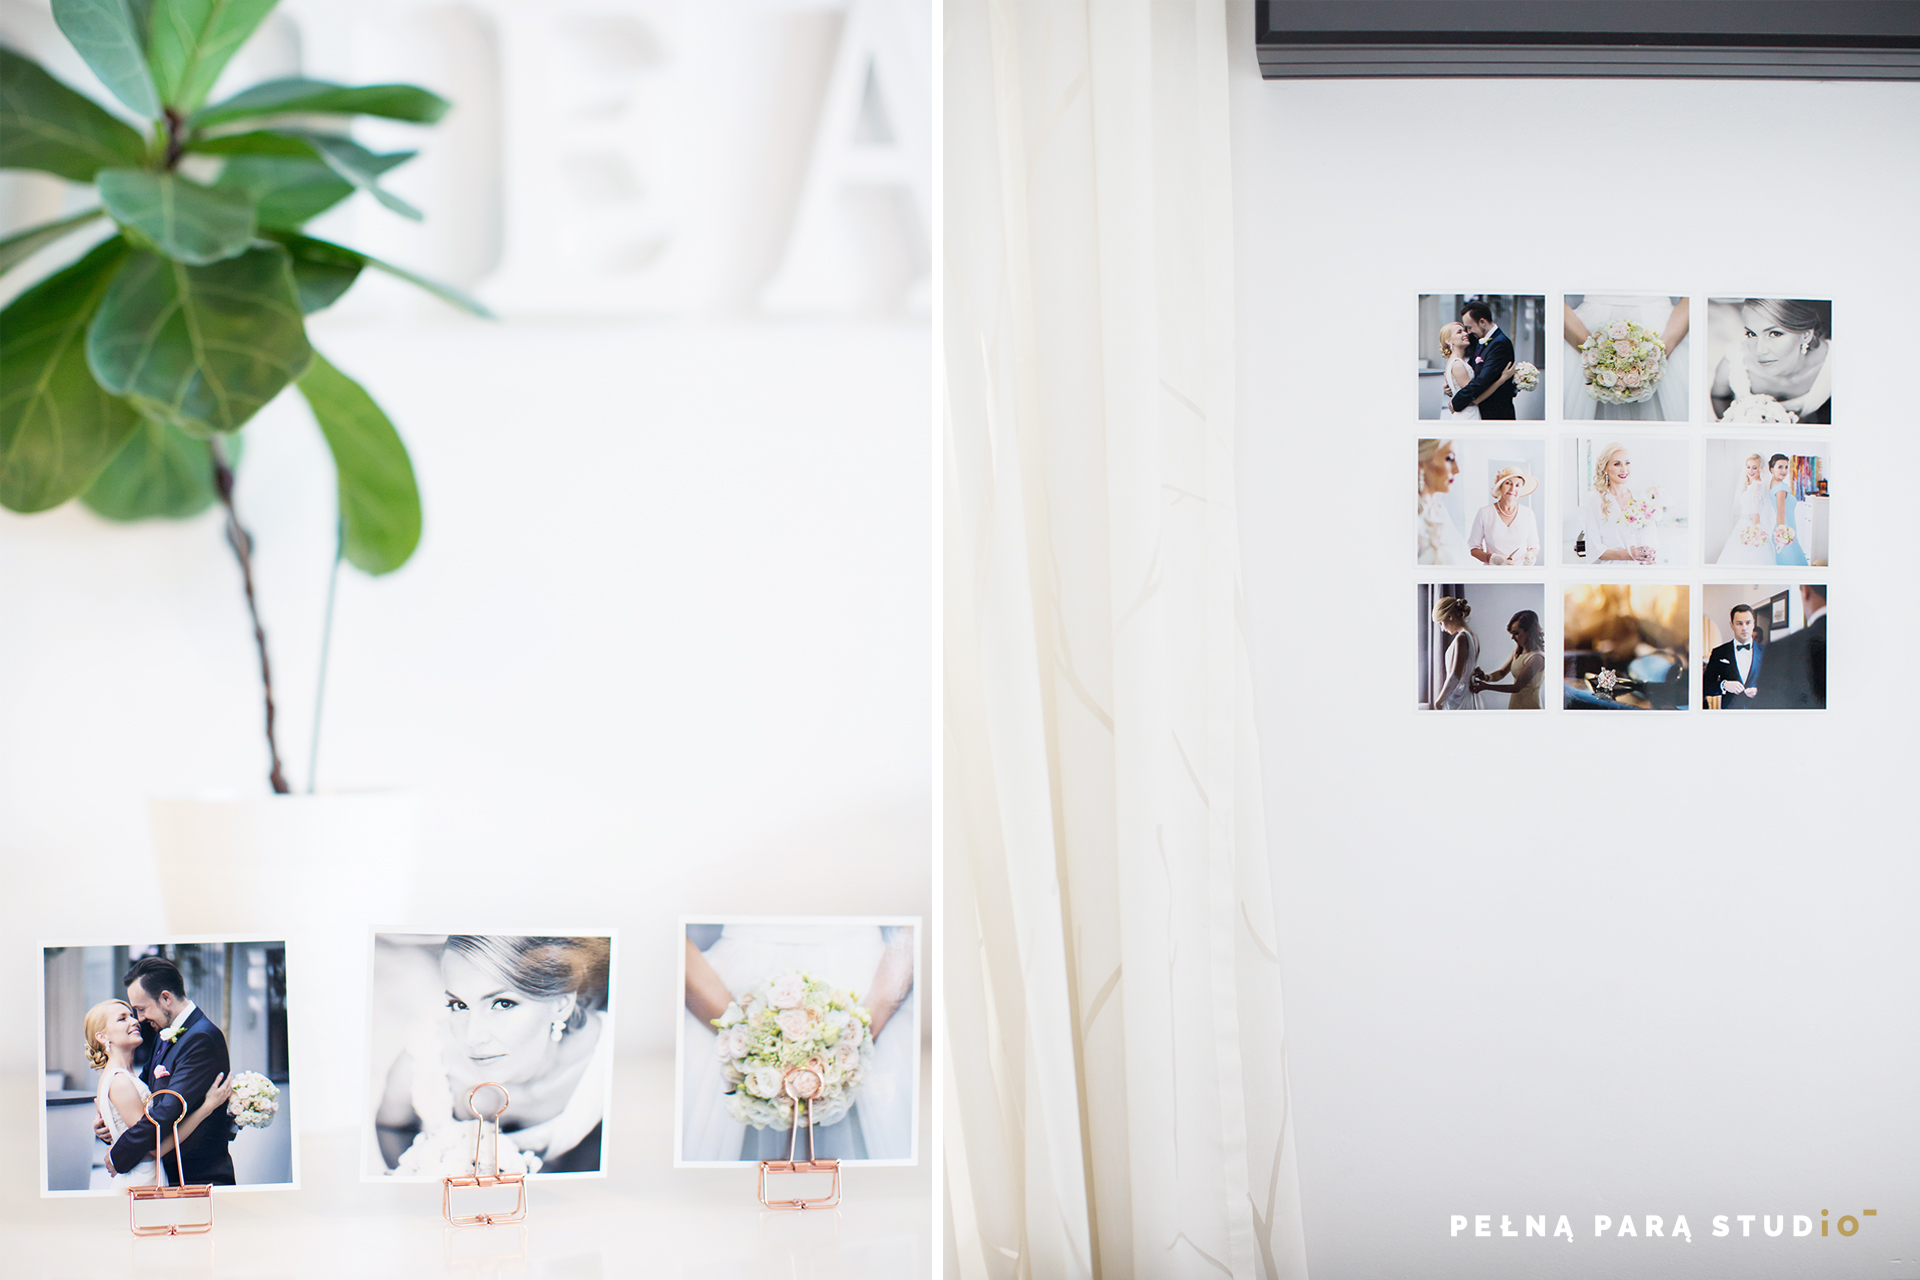 3 clever ideas to create a photo gallery at home